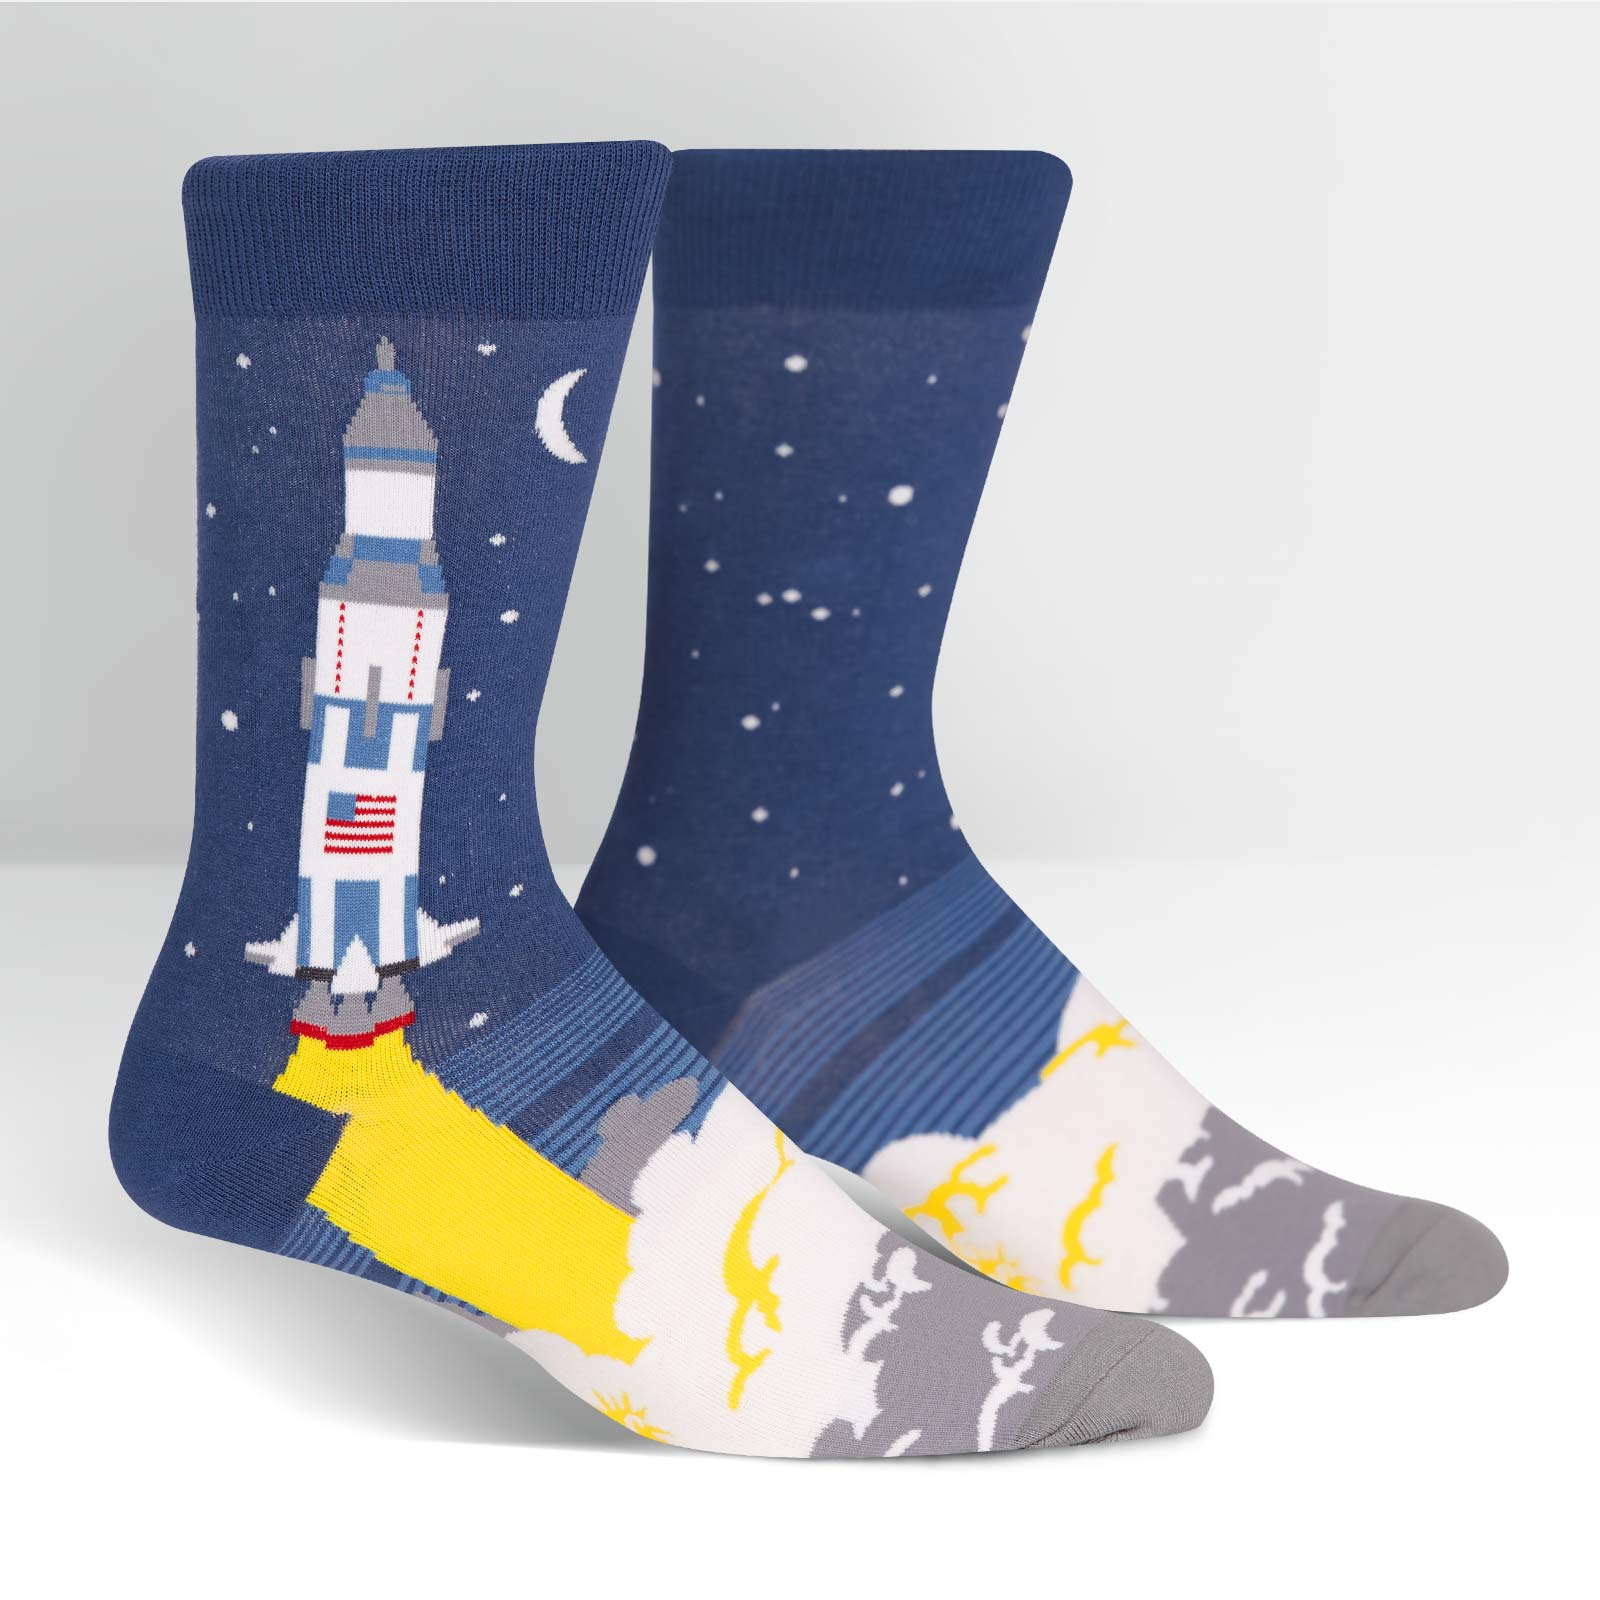 Sock It To Me Socks - Men's Crew- 3, 2, 1 Lift Off